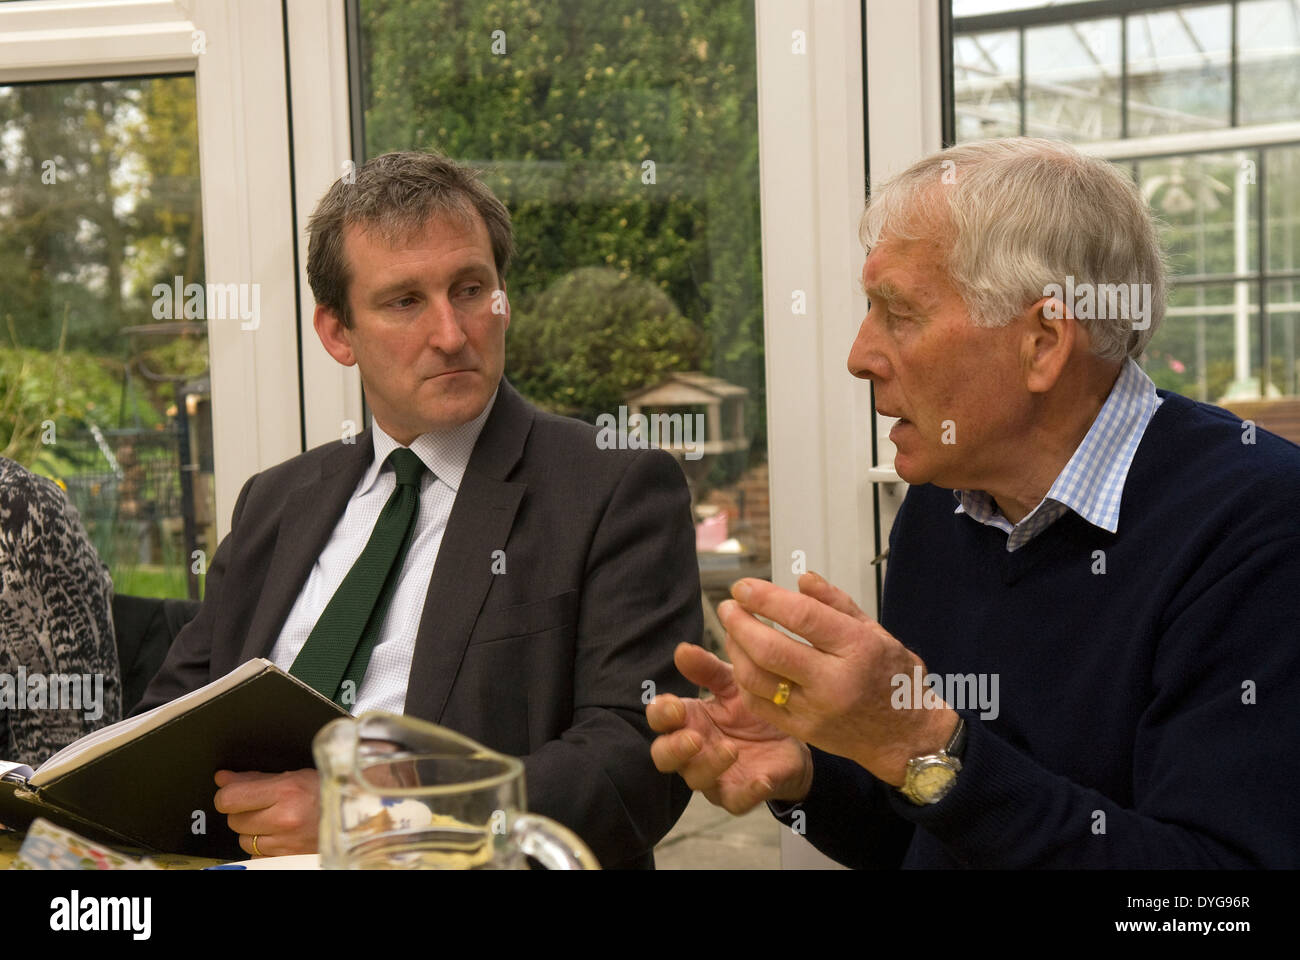 Damian Hinds (left), MP for East Hampshire, listening to an NFU member during a breakfast meeting with members of the NFU - Stock Image